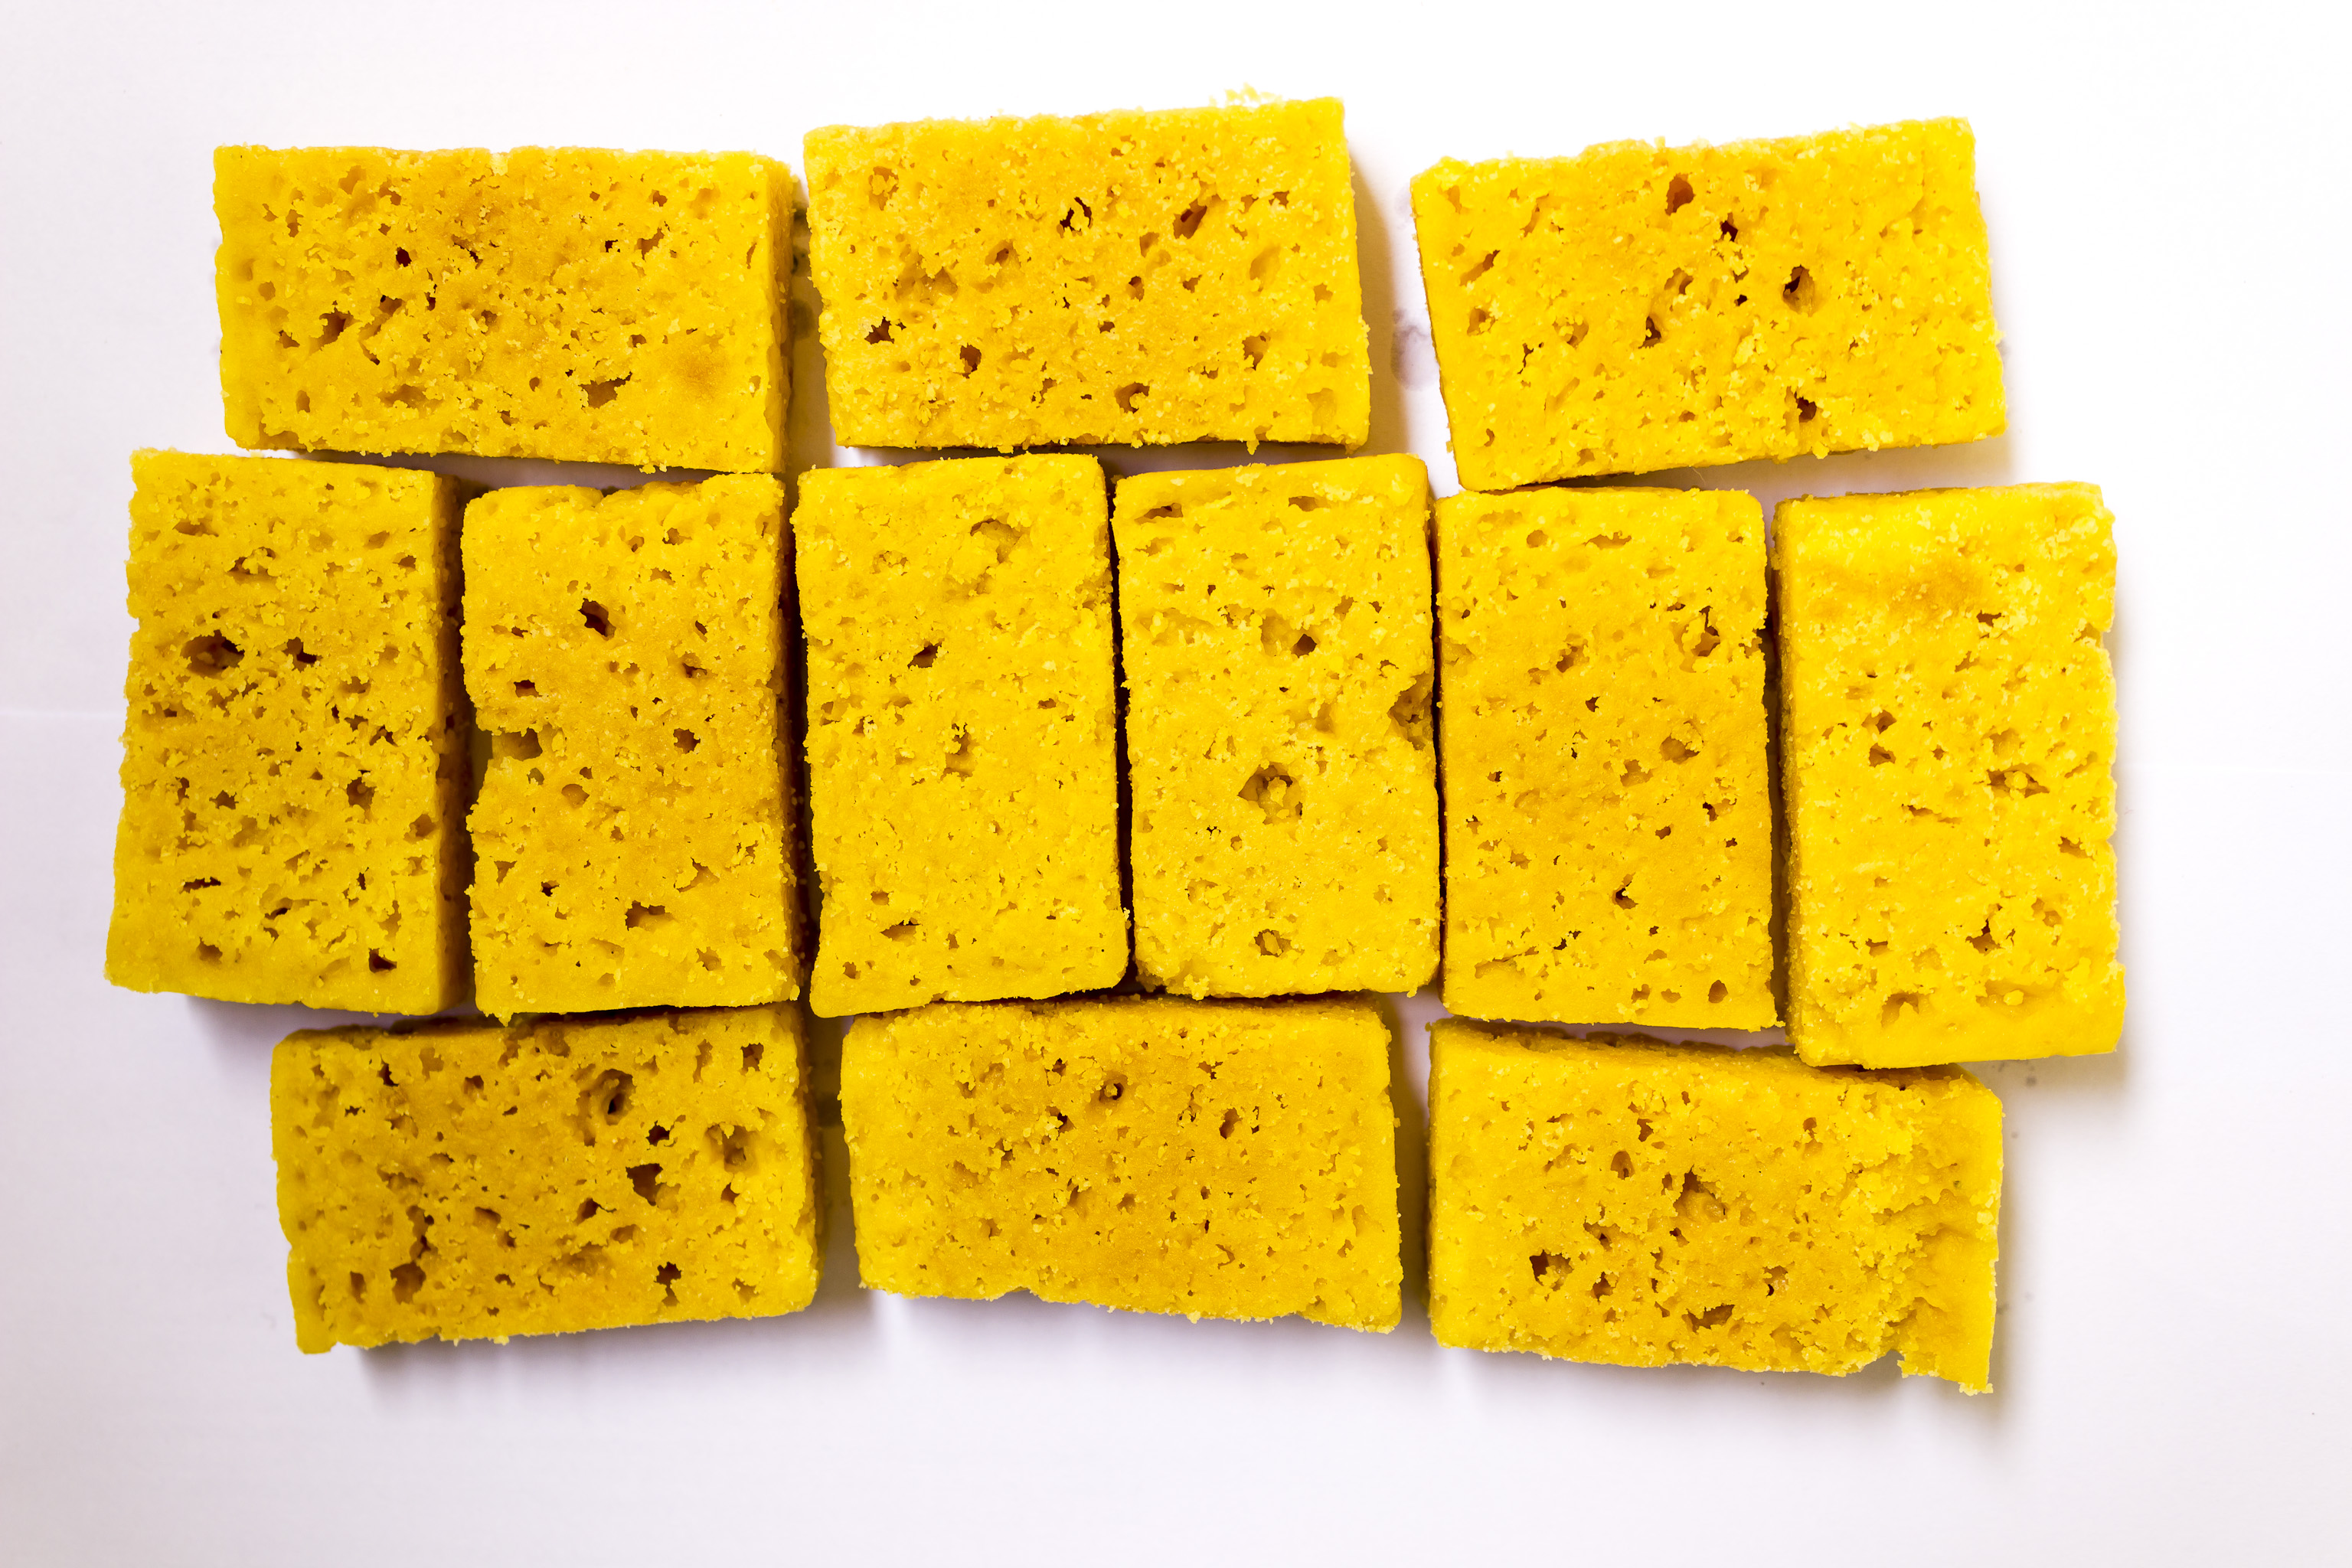 File:South Indian sweets or dessert called Mysore pak made from gram flour, powdered sugar and clarified butter.jpg - Wikimedia Commons